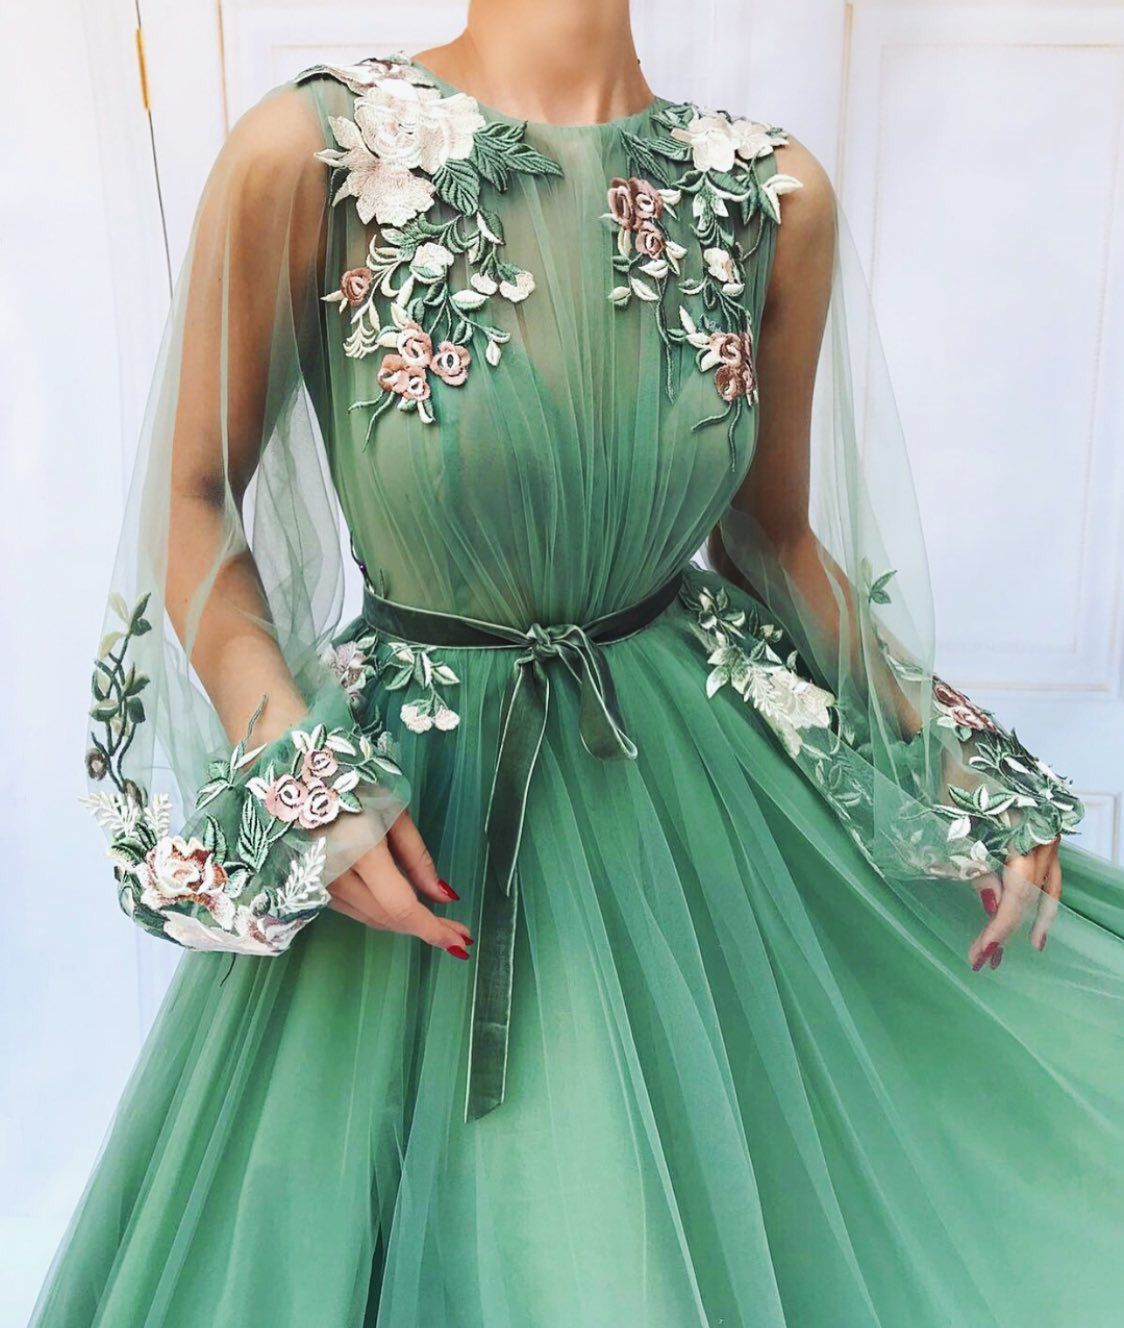 on dress formal pinterest dresses gowns and prom dresses